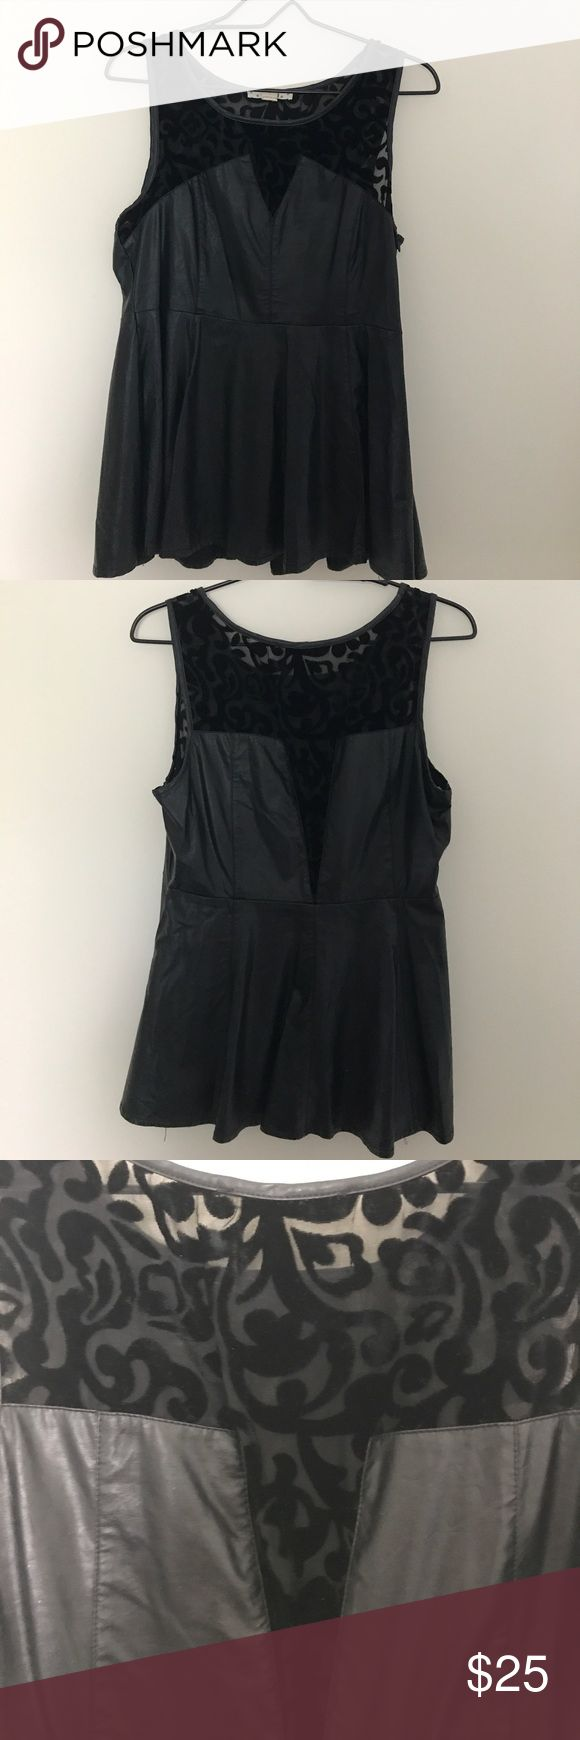 Very J Black Leather Peplum Top Black Leather Peplum Top with Velvet Paisley Details on the Top Very J Tops Blouses